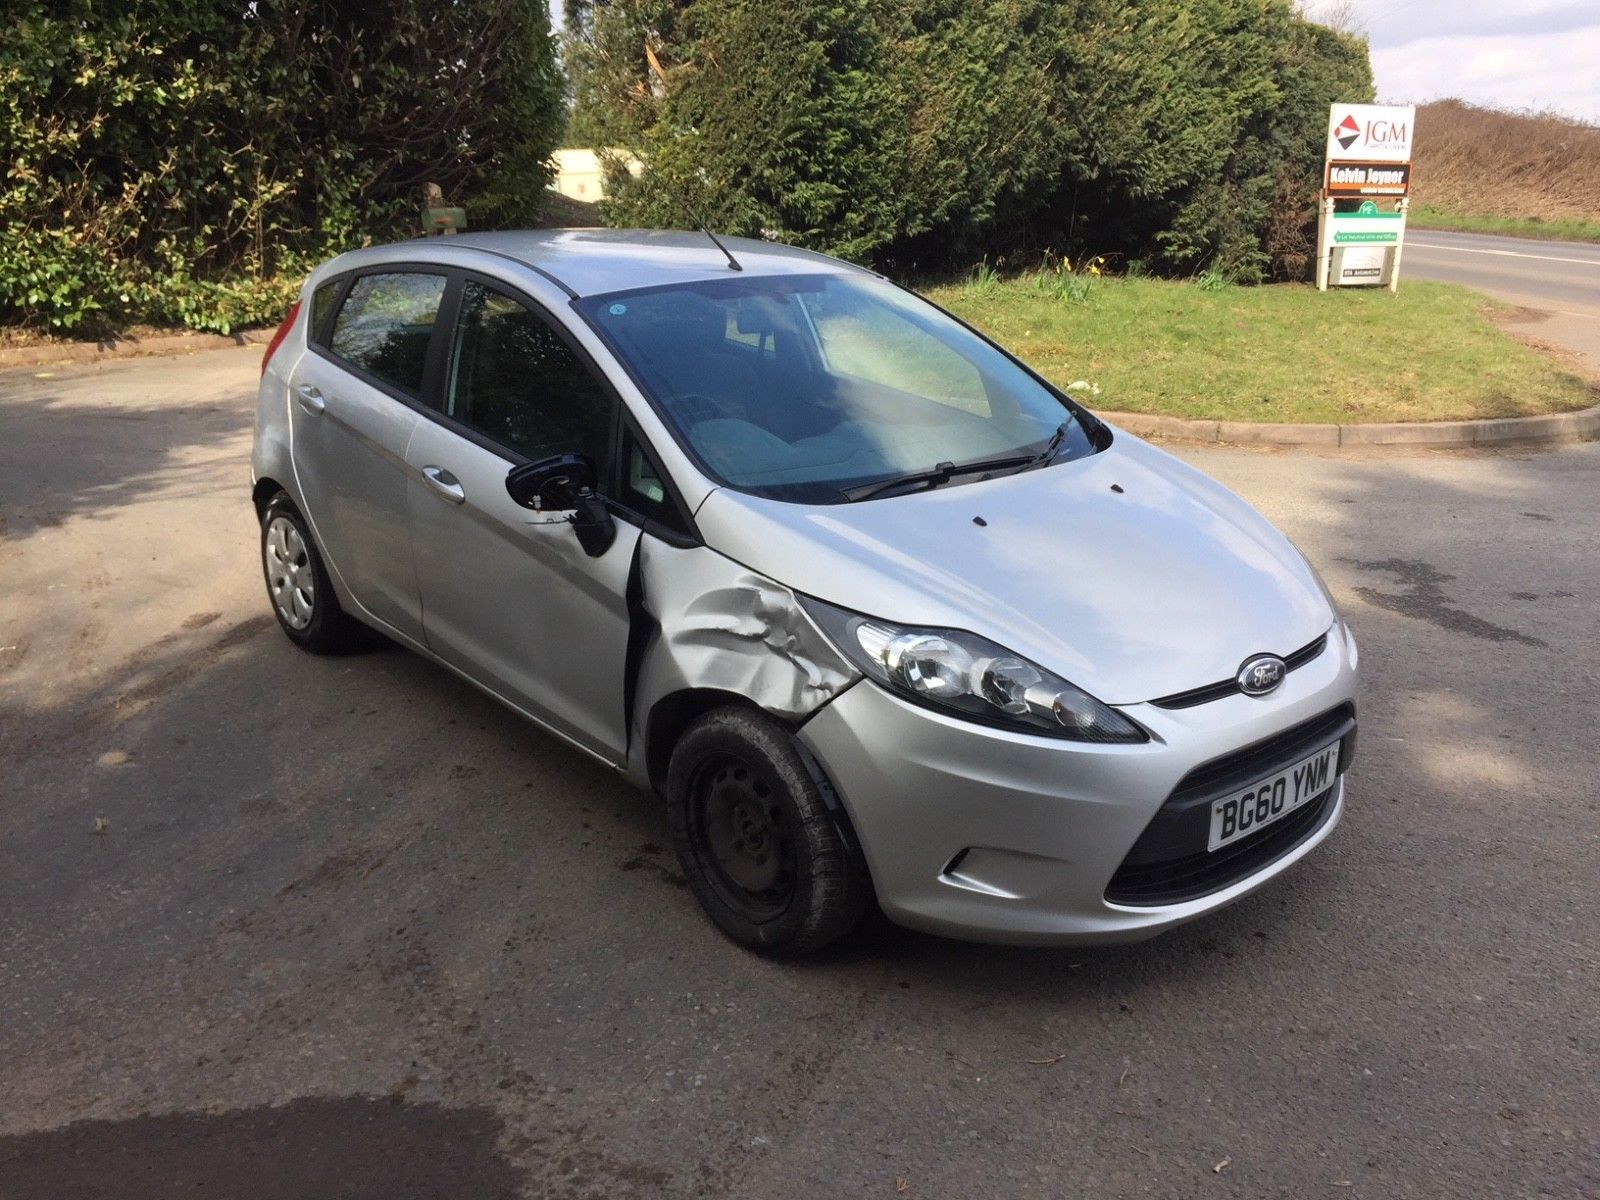 Ebay 2011 Ford Fiesta Eco Diesel Damaged Repairable Salvage